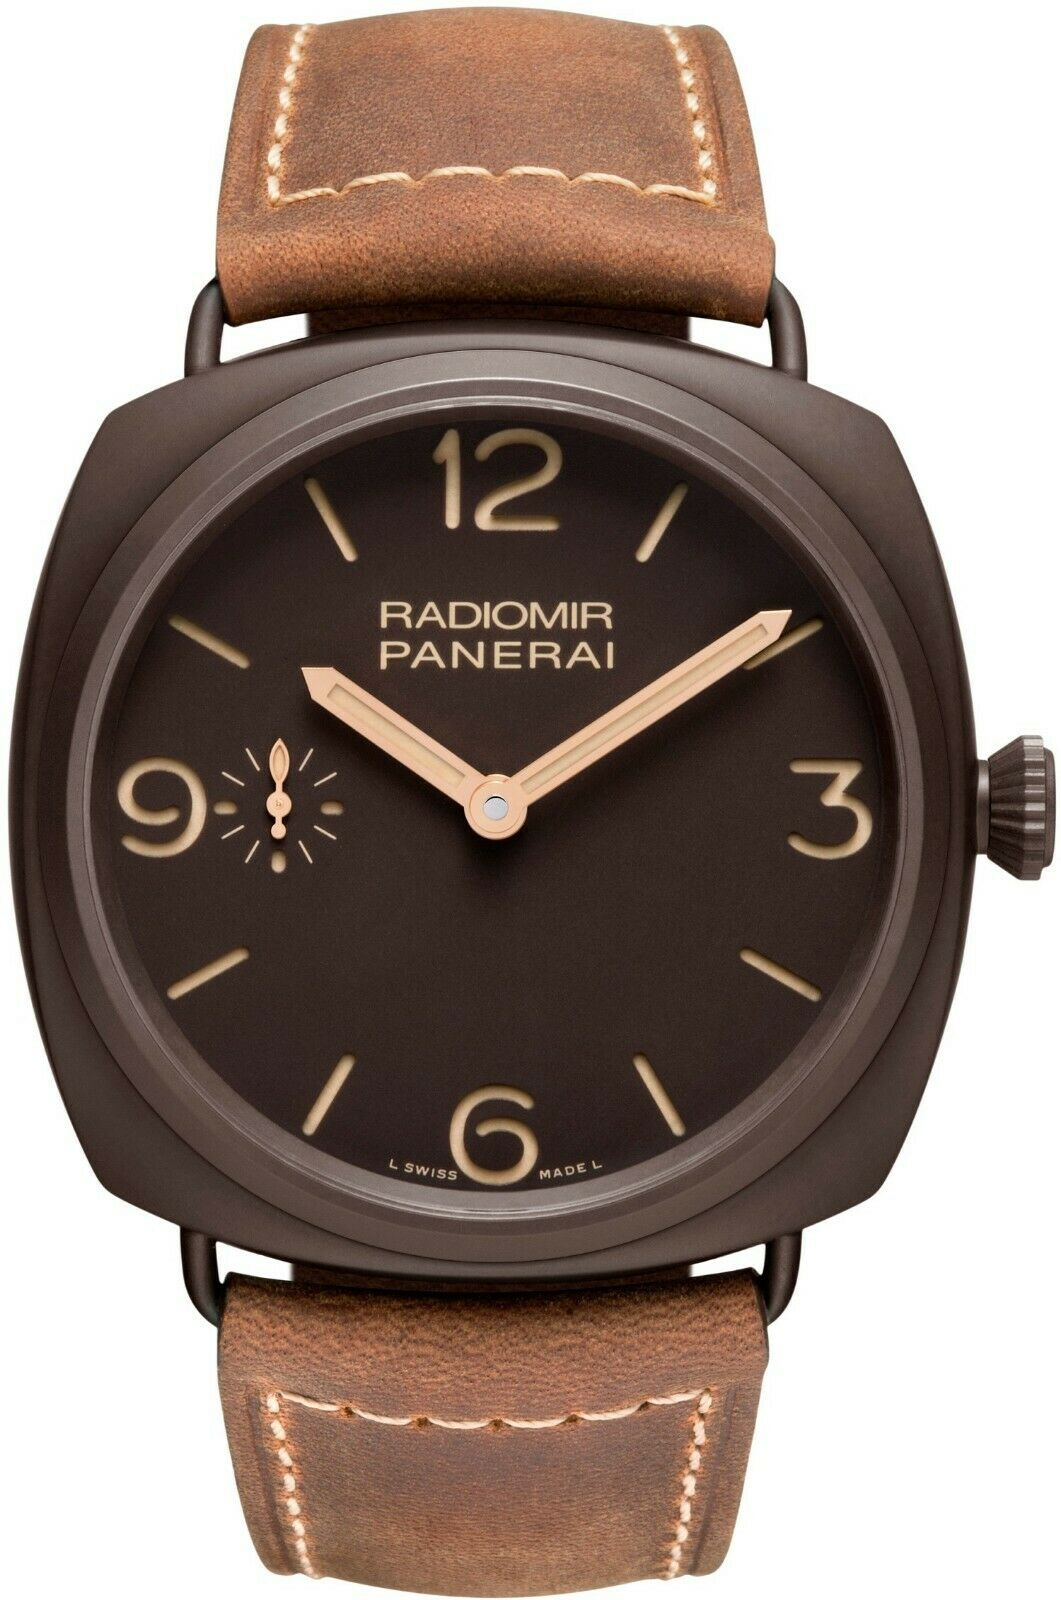 PANERAI RADIOMIR COMPOSITE 3-DAYS PAM00504 OP5914 LARGE LIMITED EDITION WATCH - watch picture 1